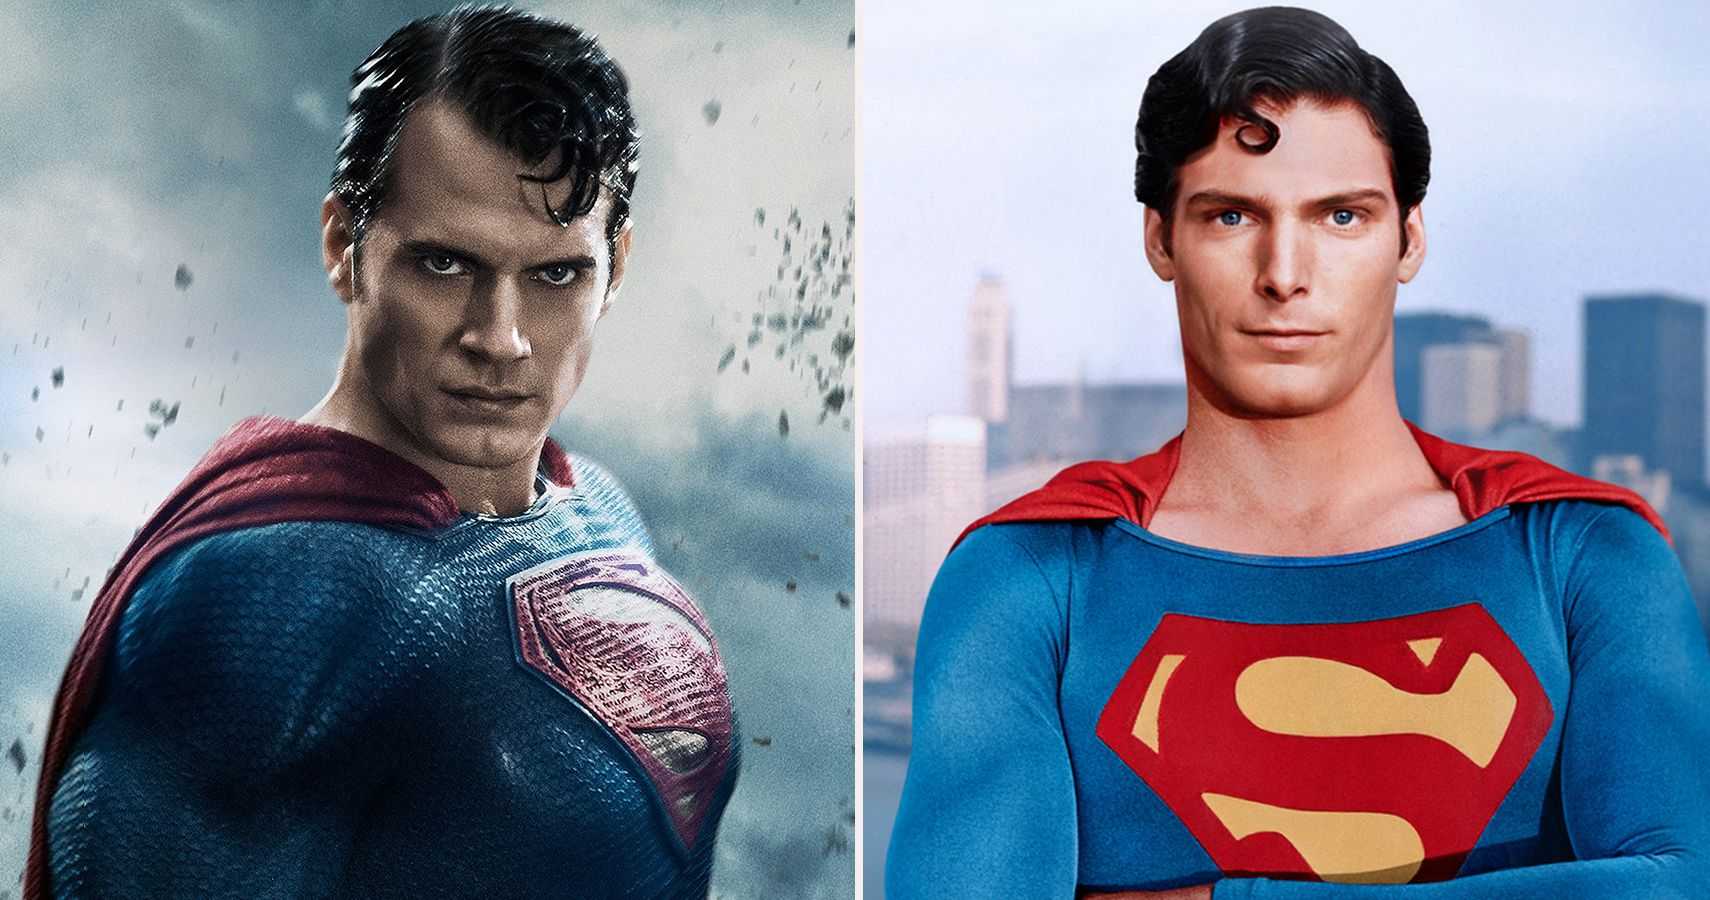 Versions of Superman's suit